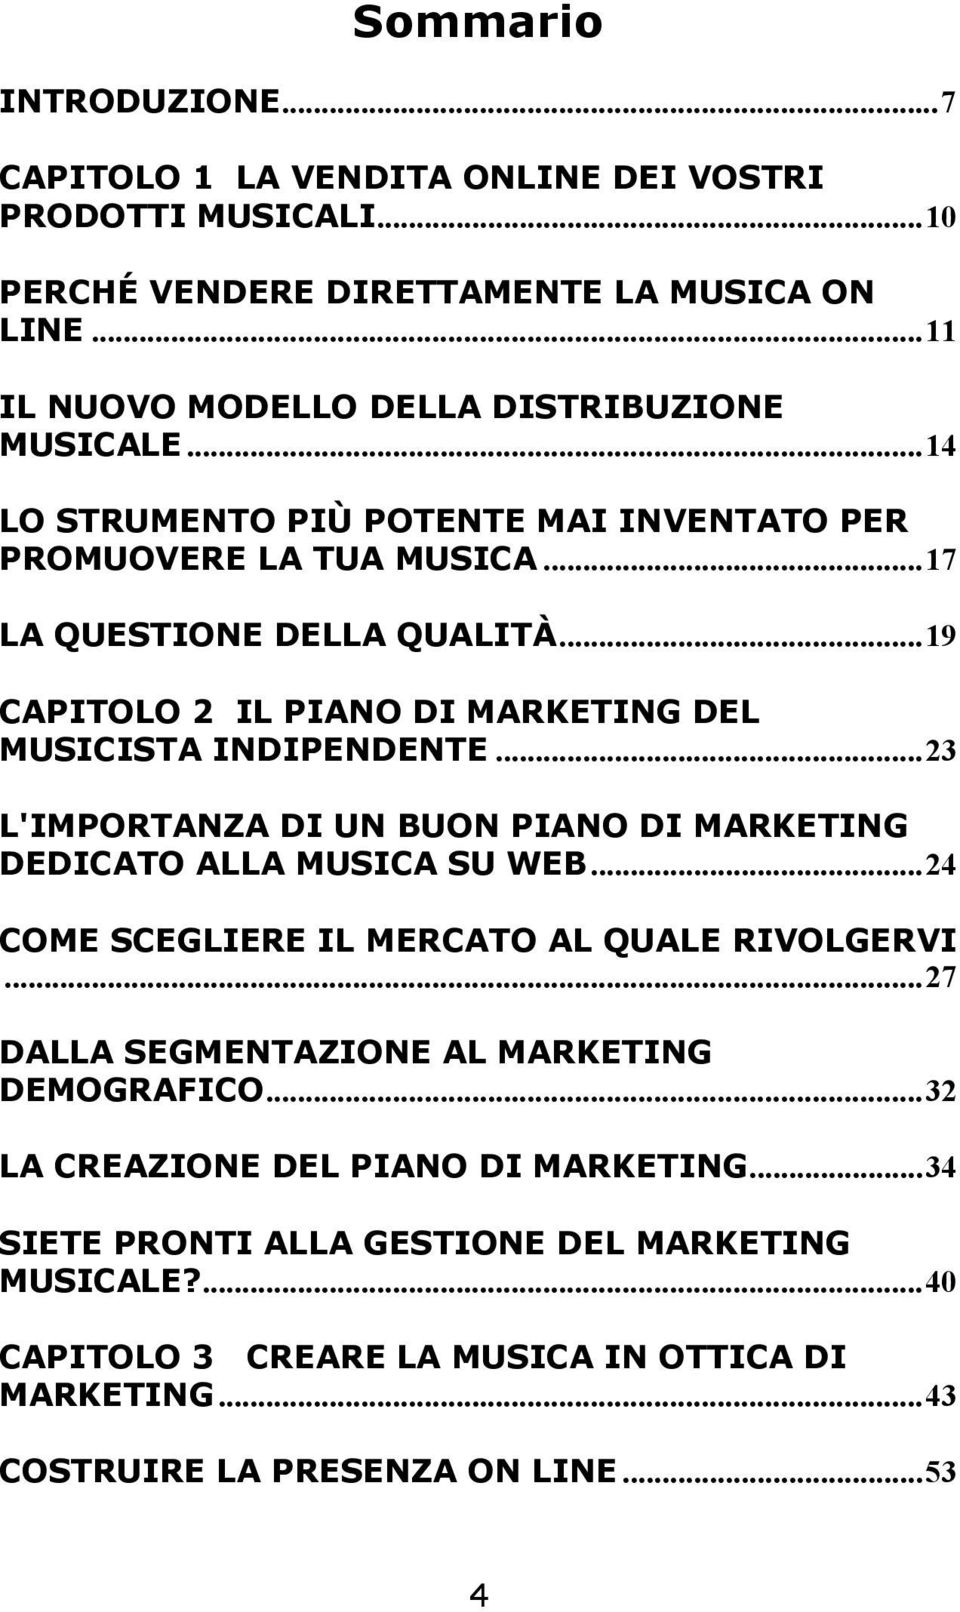 ..19 CAPITOLO 2 IL PIANO DI MARKETING DEL MUSICISTA INDIPENDENTE...23 L'IMPORTANZA DI UN BUON PIANO DI MARKETING DEDICATO ALLA MUSICA SU WEB.